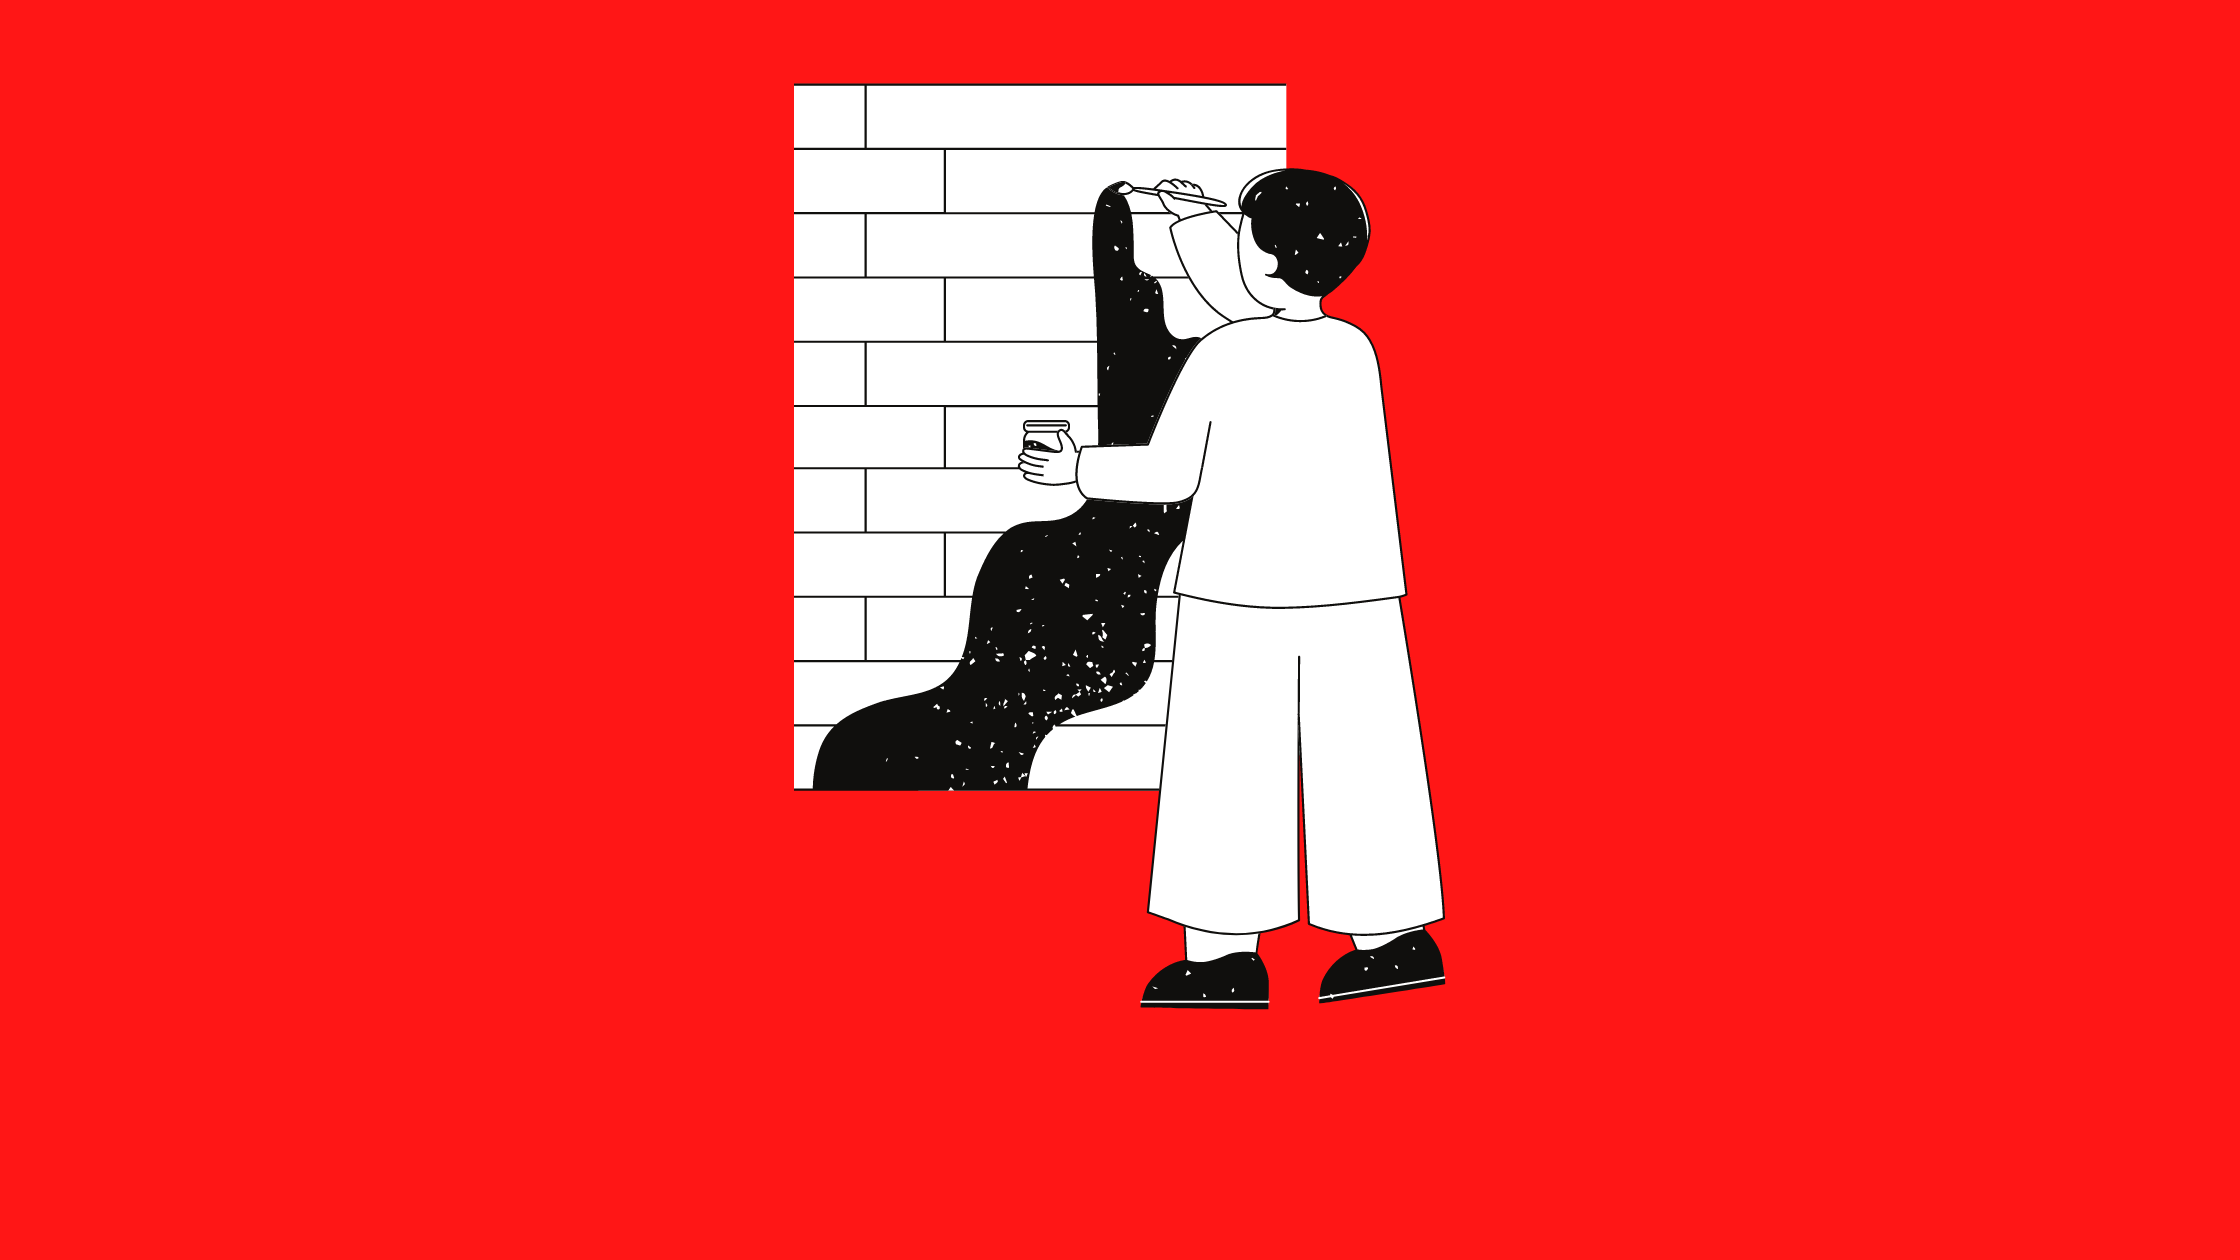 black and white illustration of a person painting on a brick wall set against a red background